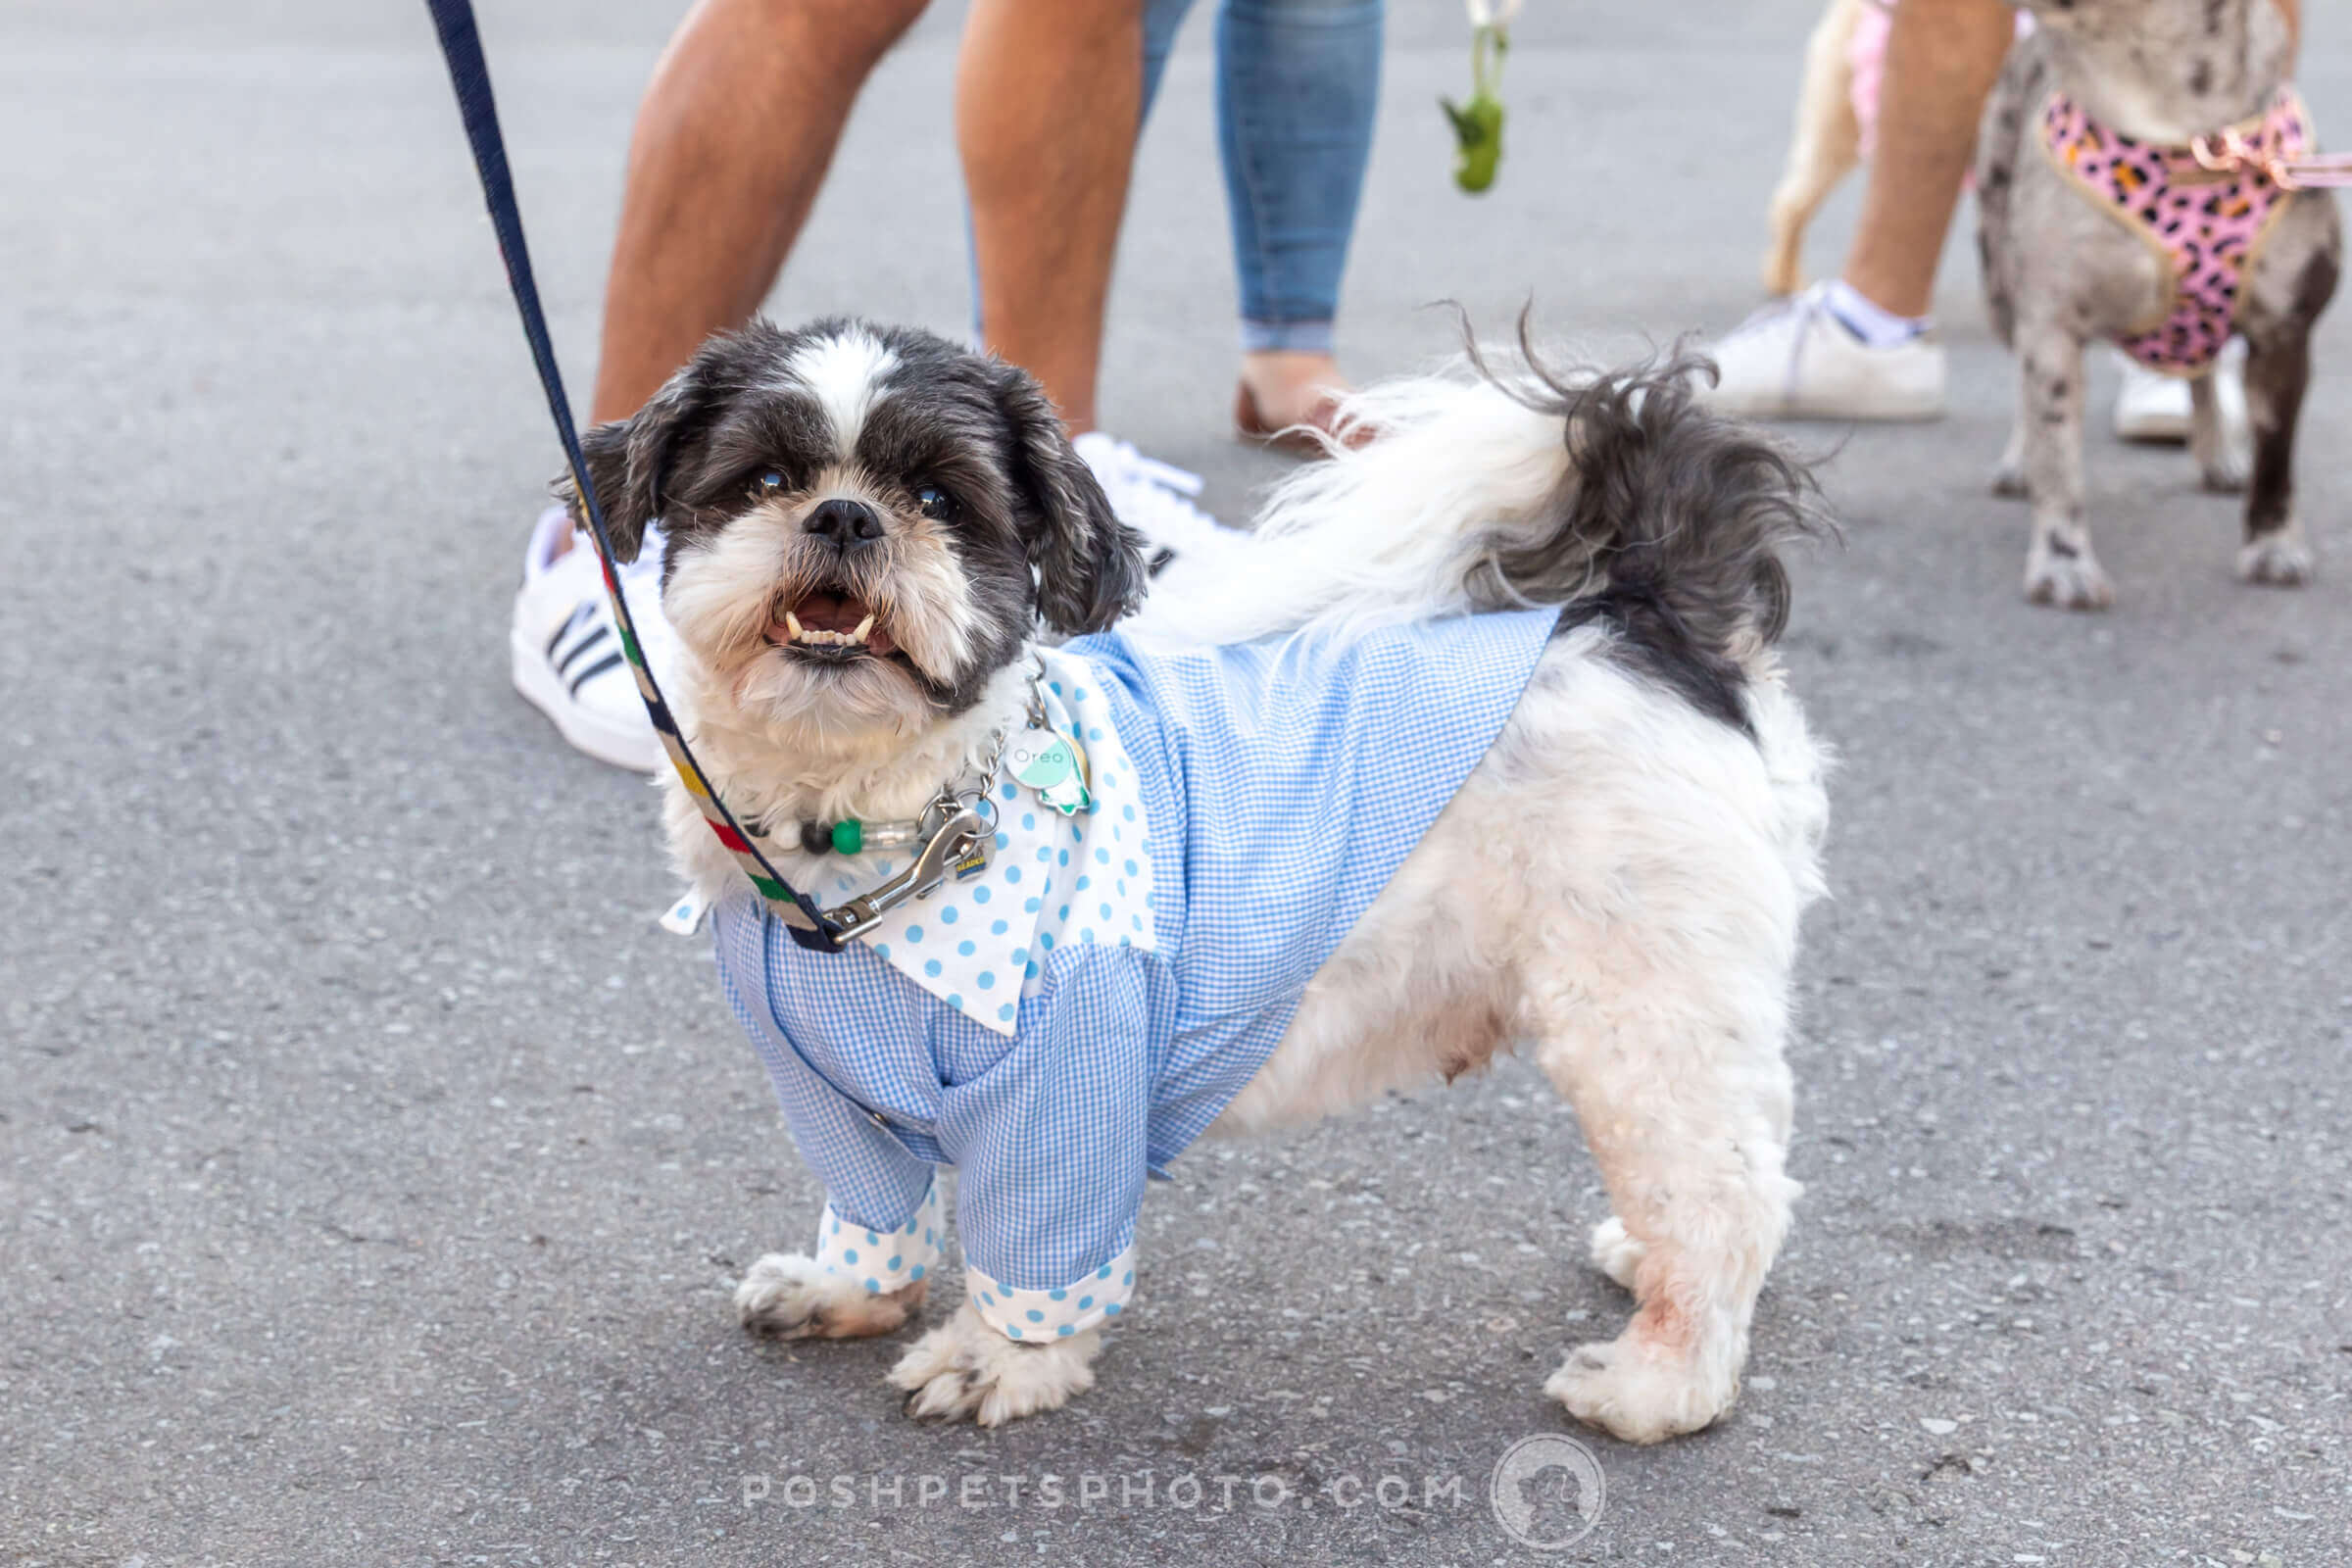 Shih Tzu dog in morning suit